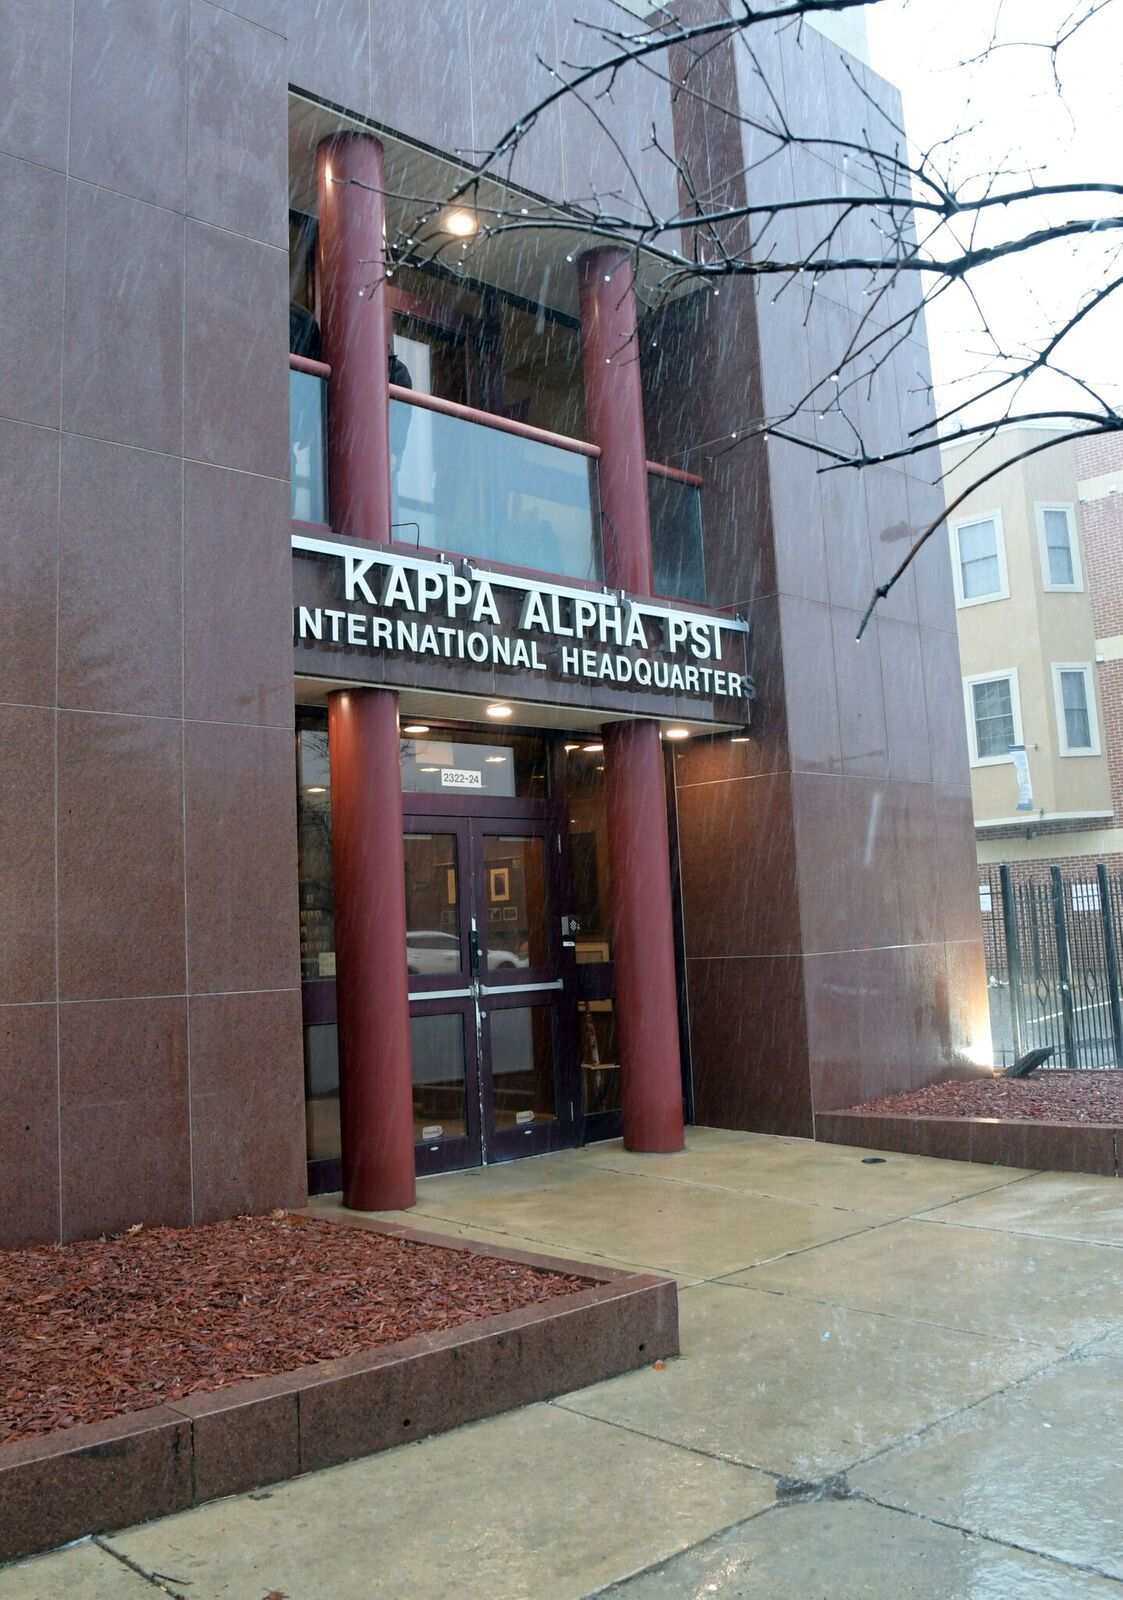 21dee65a5 Court documents allege Kappa Alpha Psi finance director stole more ...